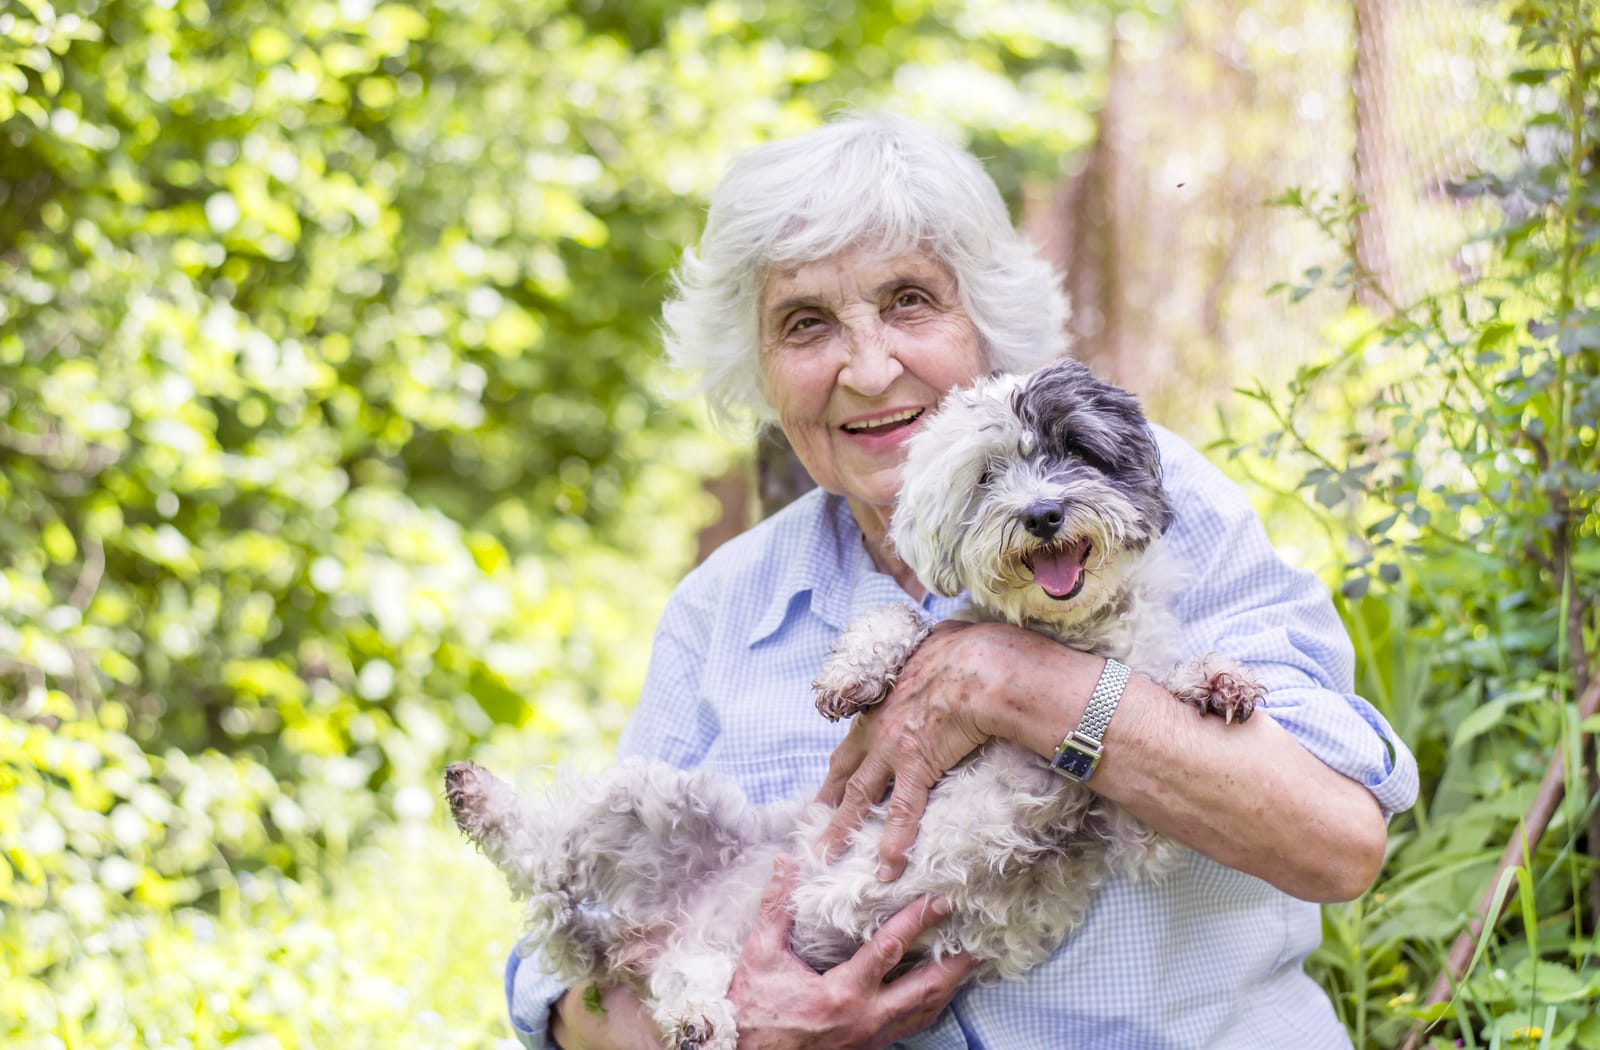 A smiling senior woman holds a small dog as part of pet therapy